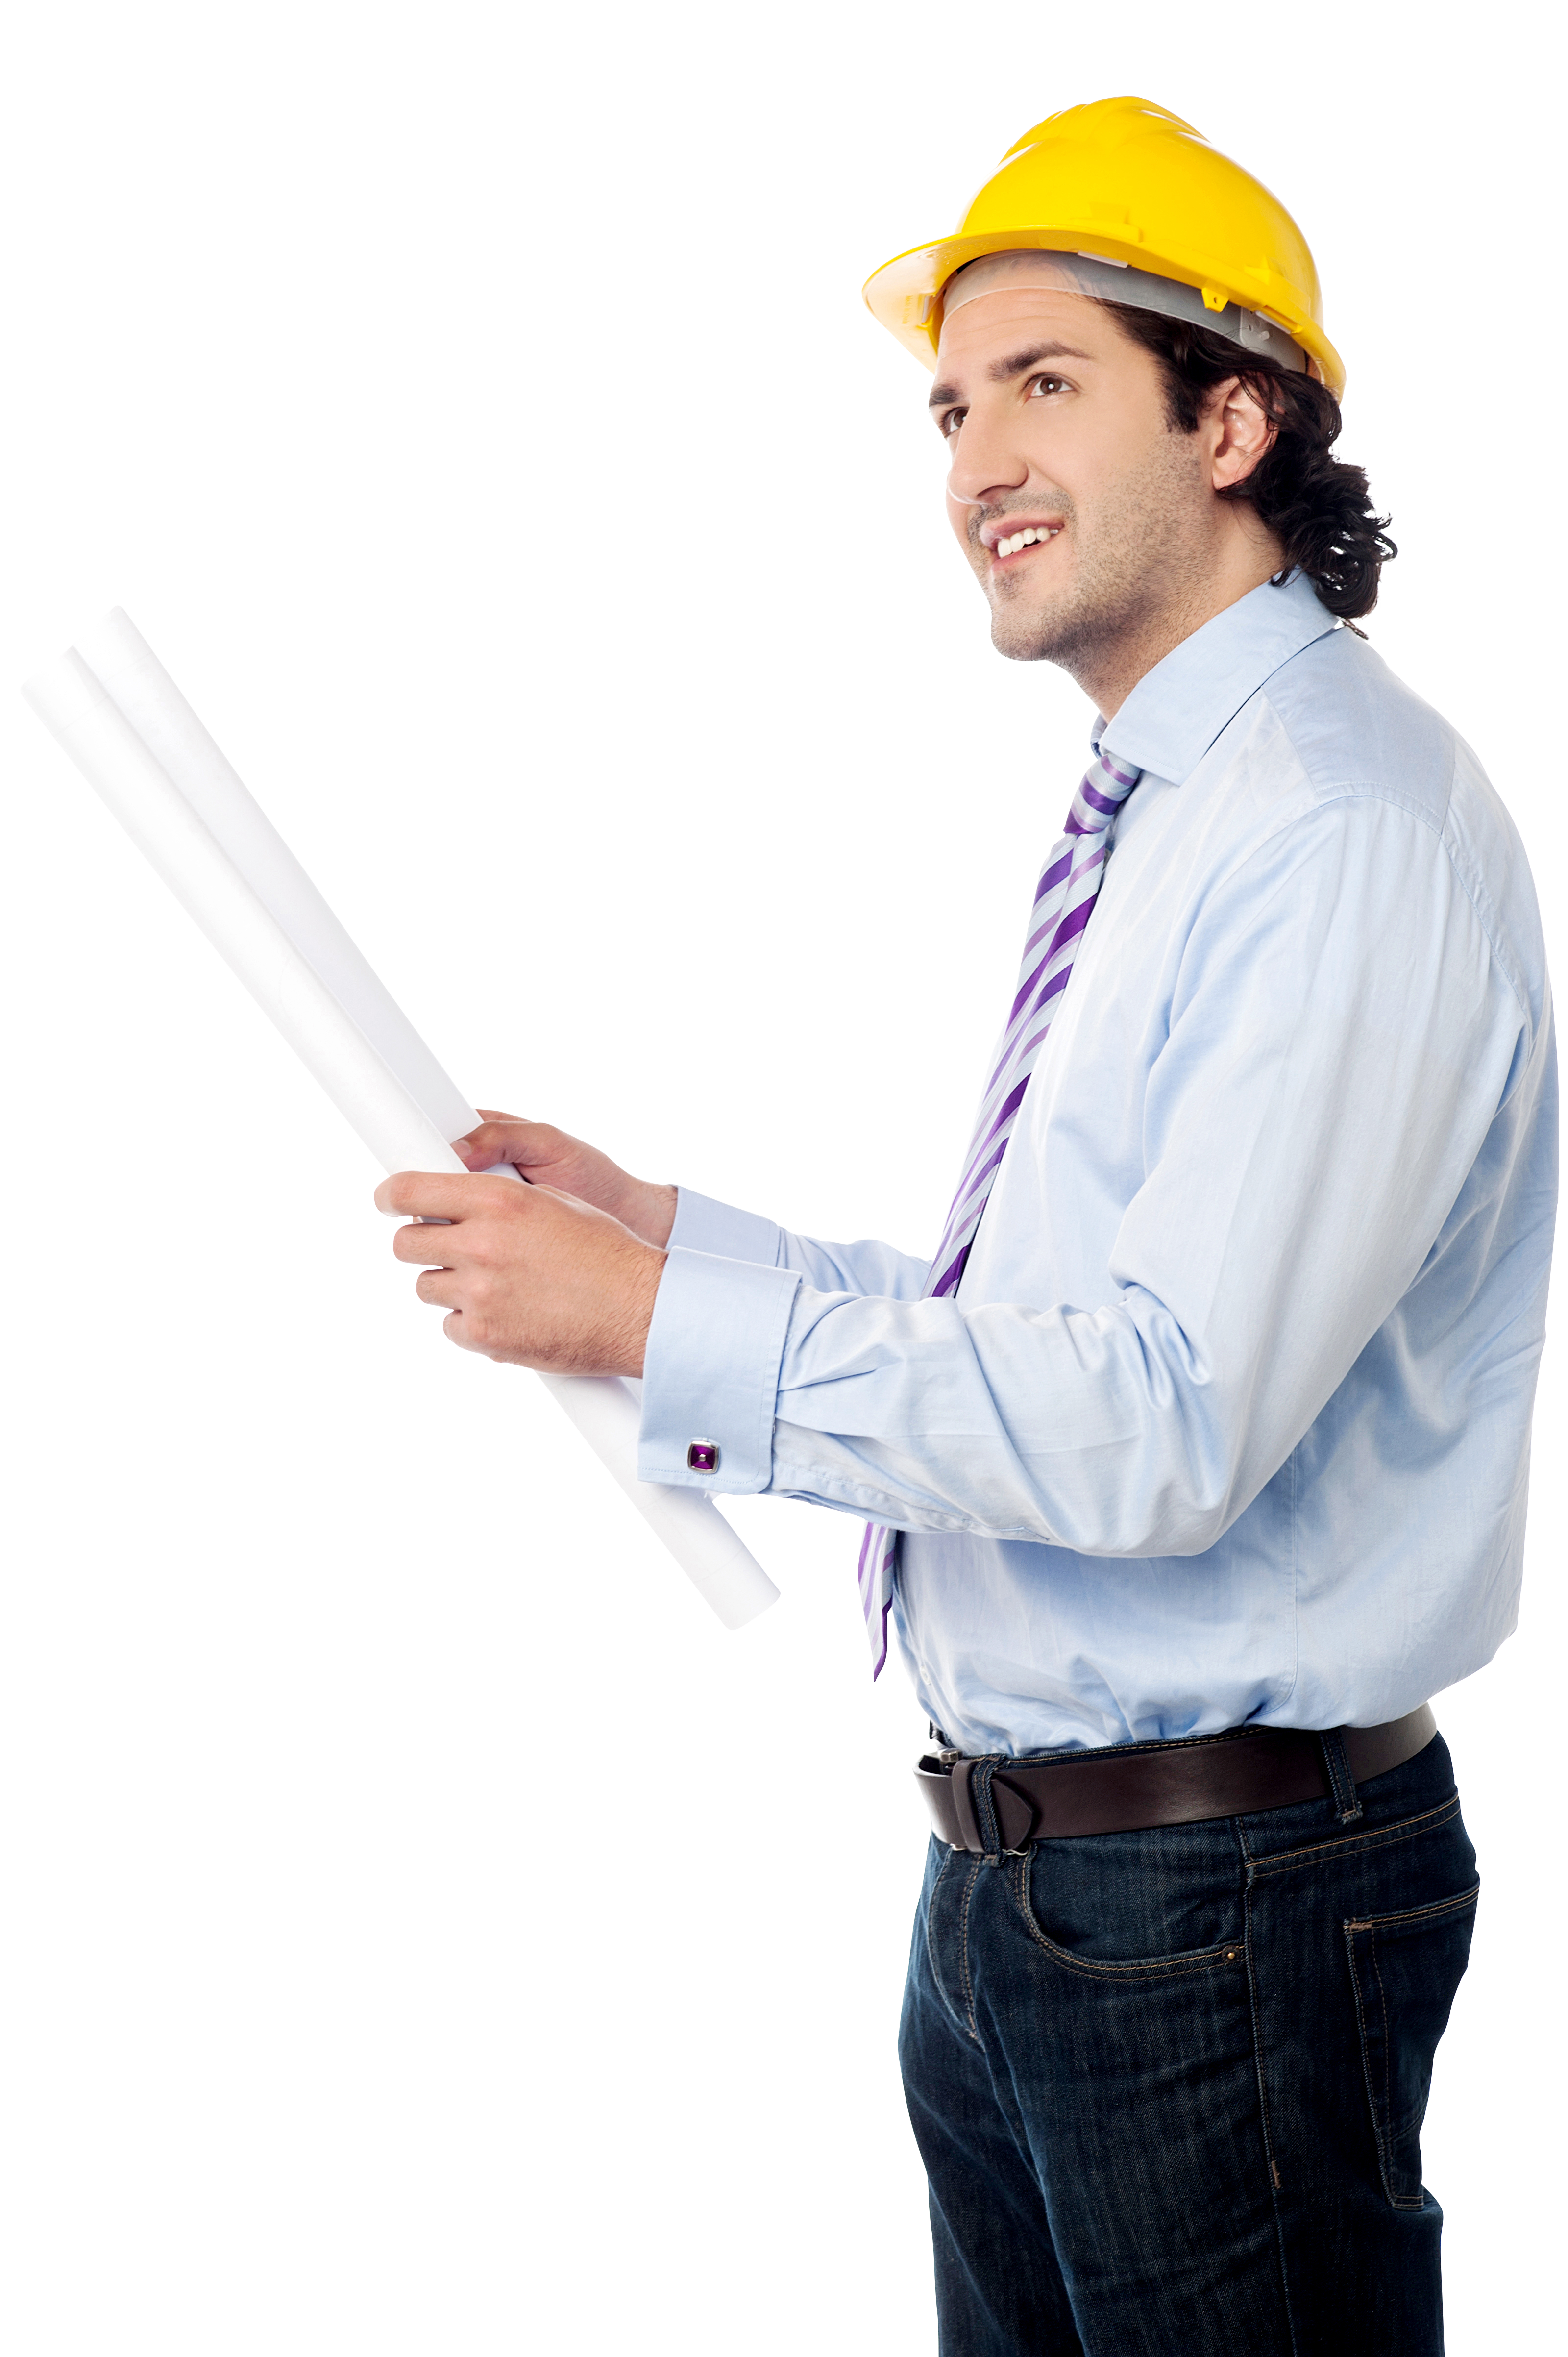 Architects At Work Png Image Png Images Image Architect